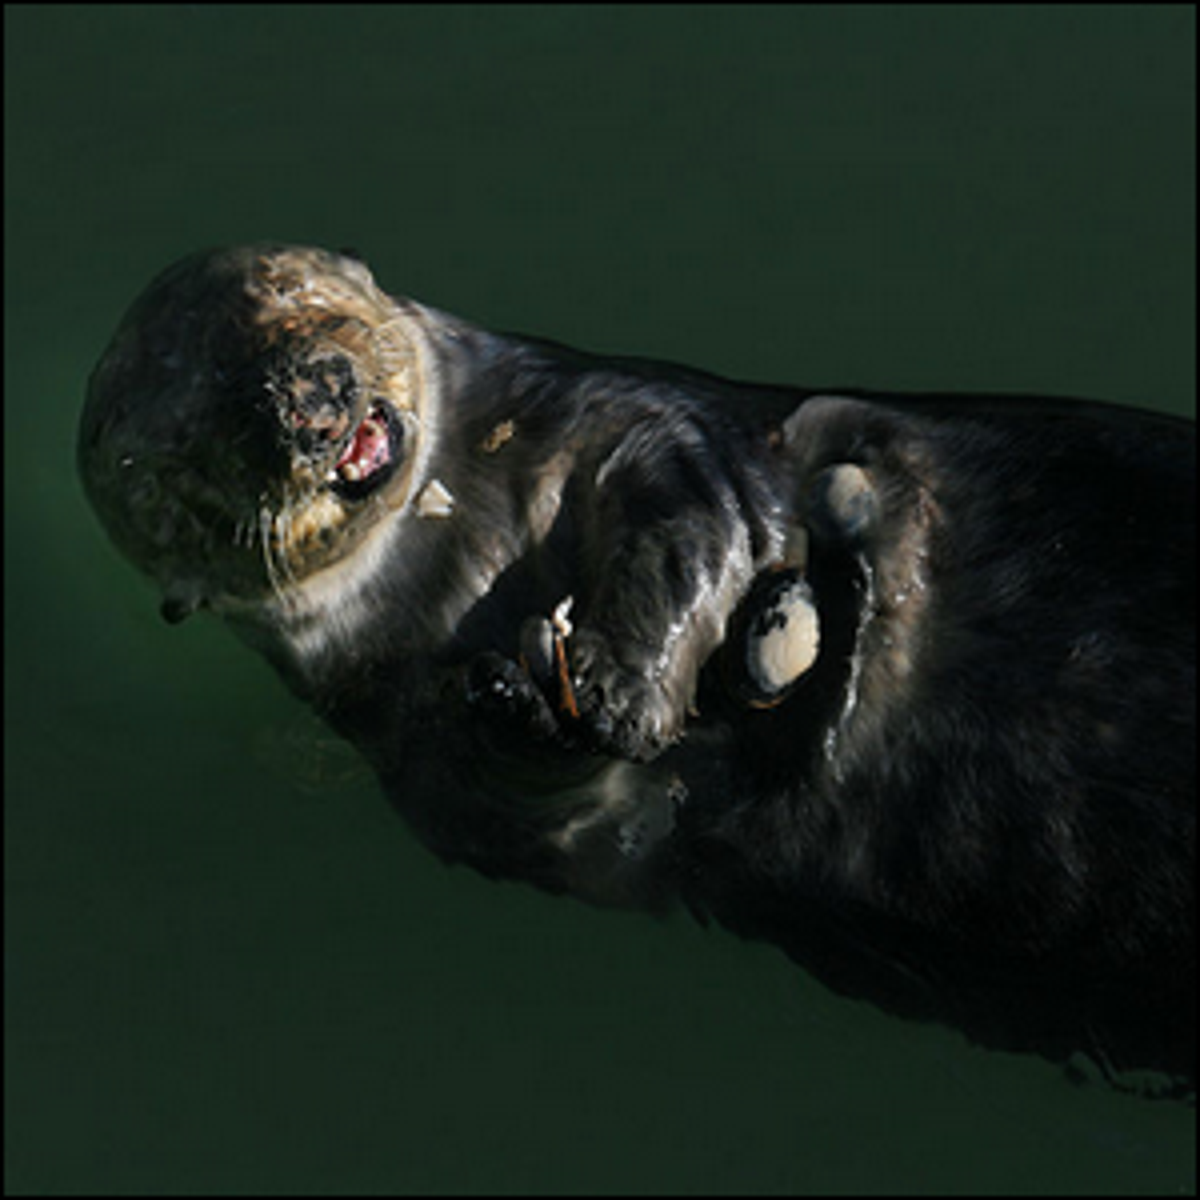 Sea otters floating and eating clams that were cracked open by a stone